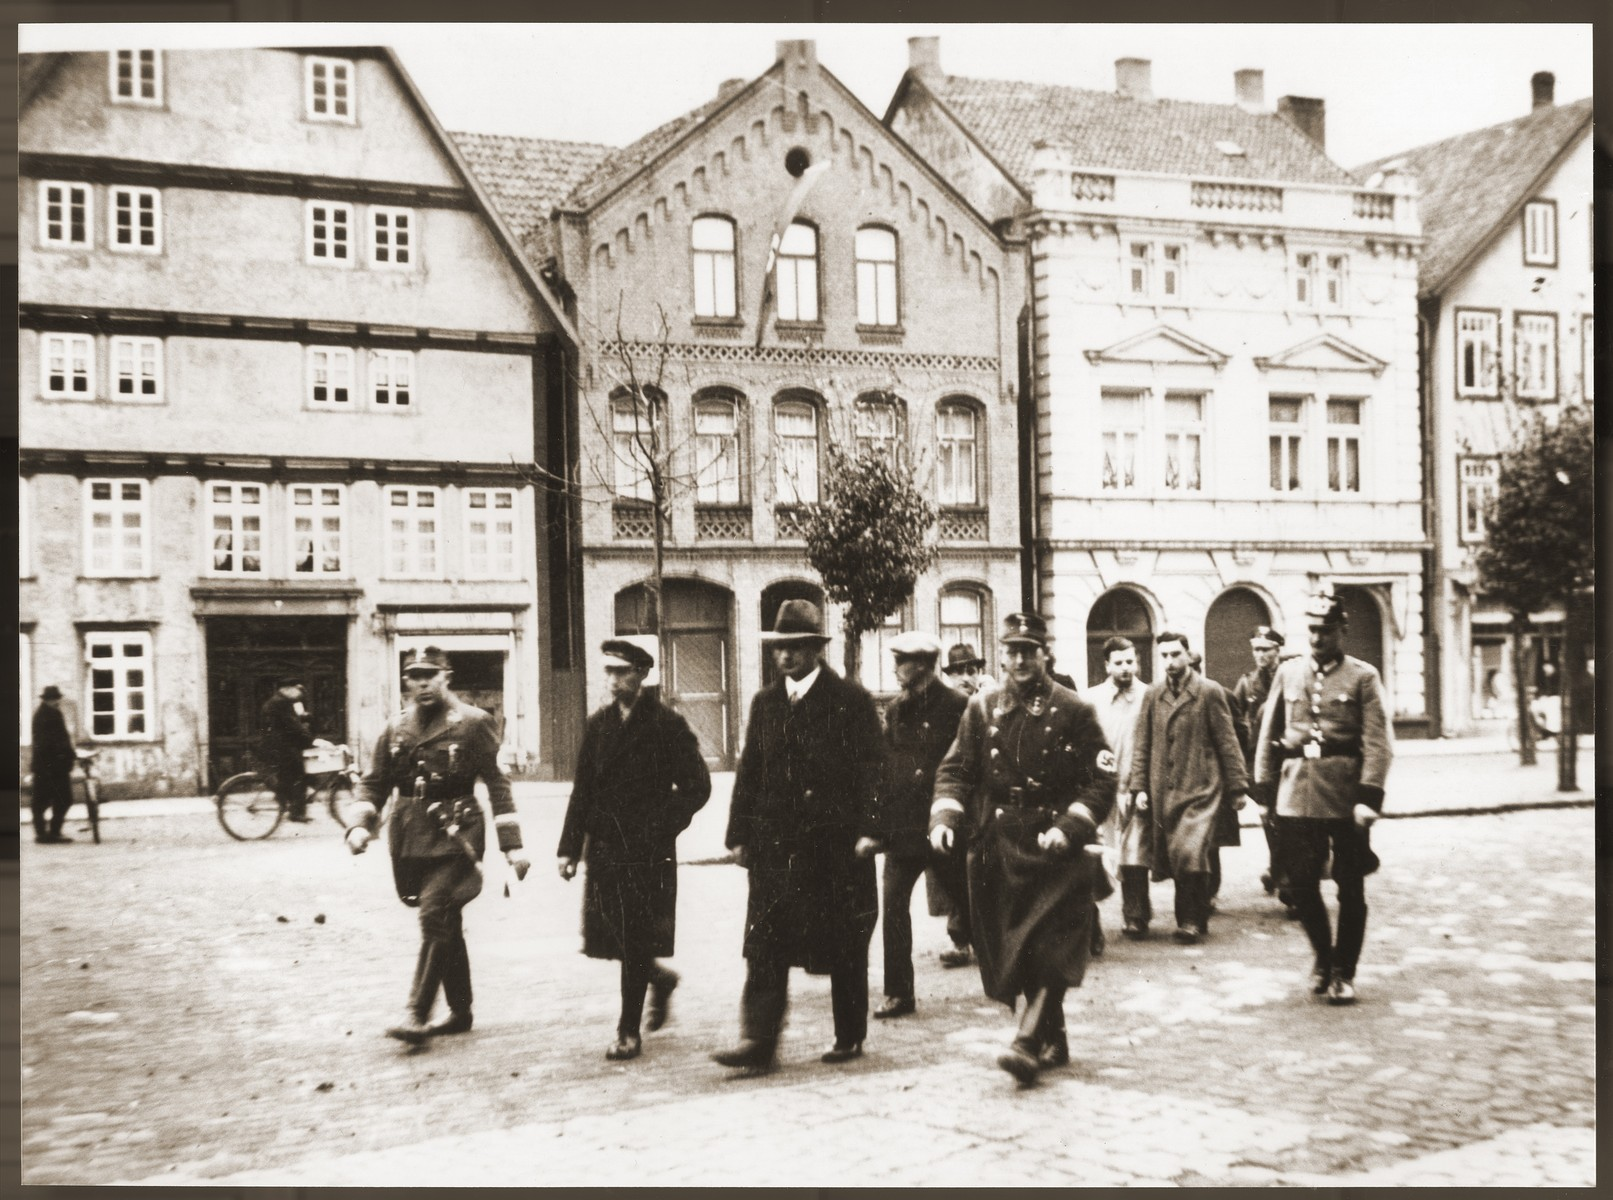 A small group of Jewish men, who have been rounded-up for arrest in the days after Kristallnacht, is escorted down a street by German police and SA members.